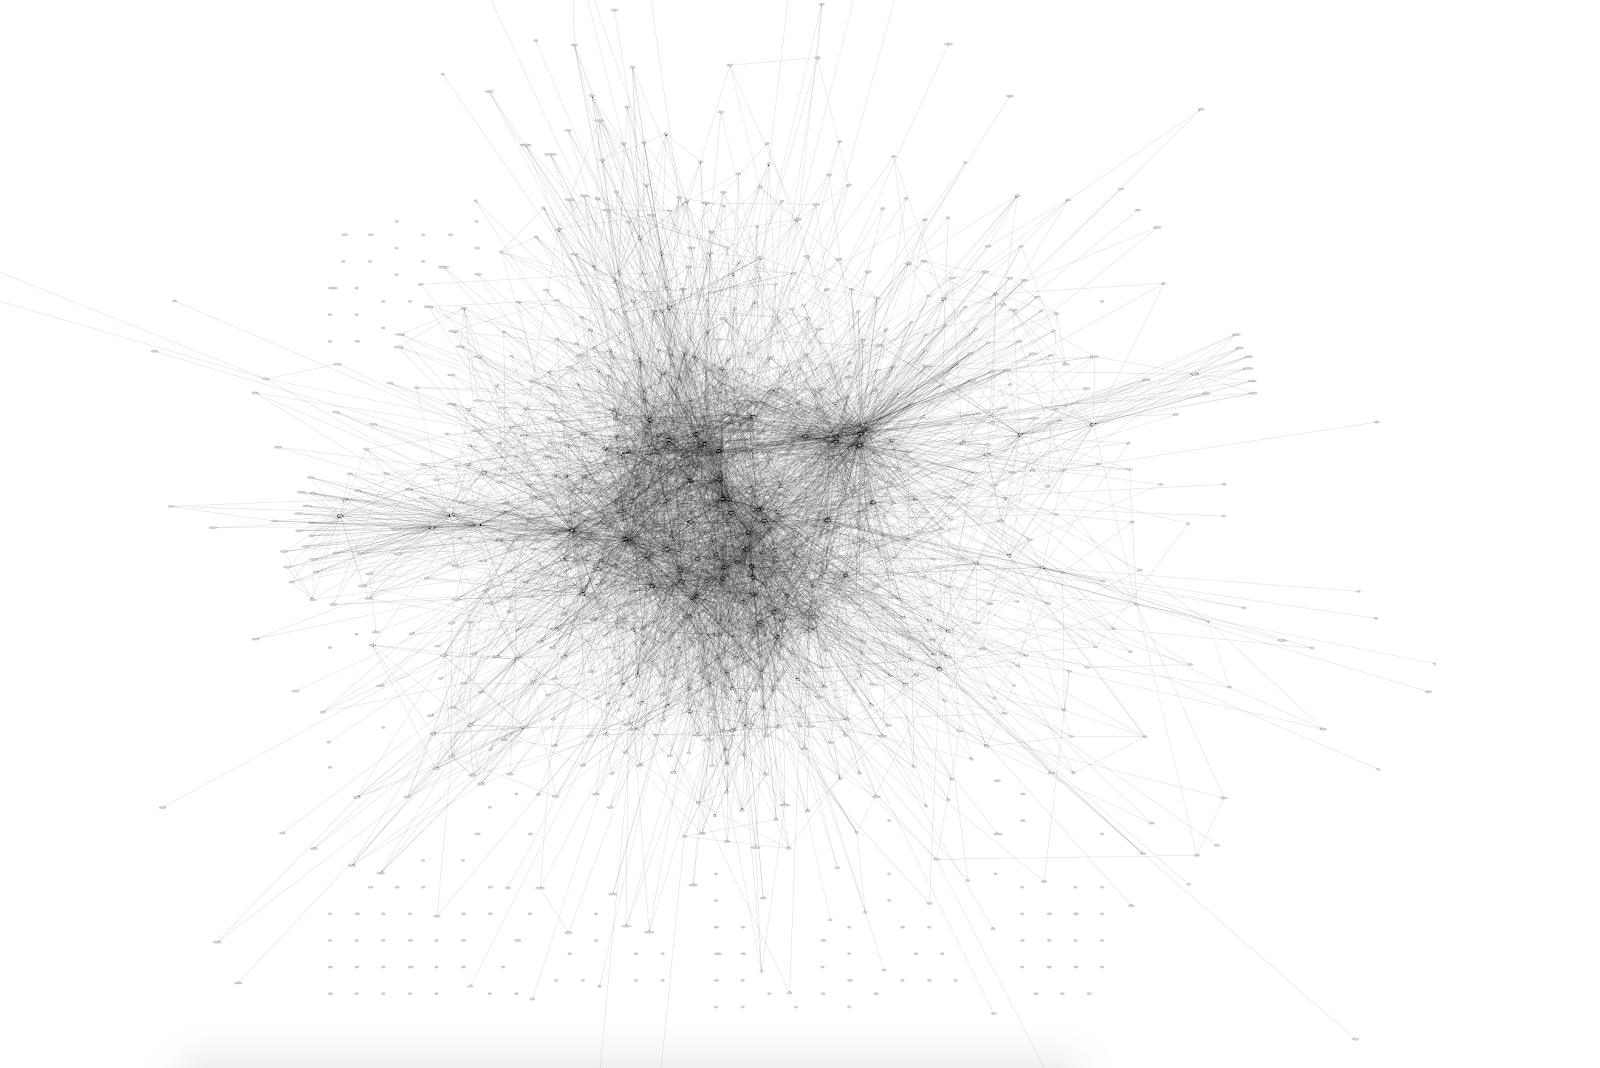 A picture of a huge dependency graph; little structure is visible amidst the tangle